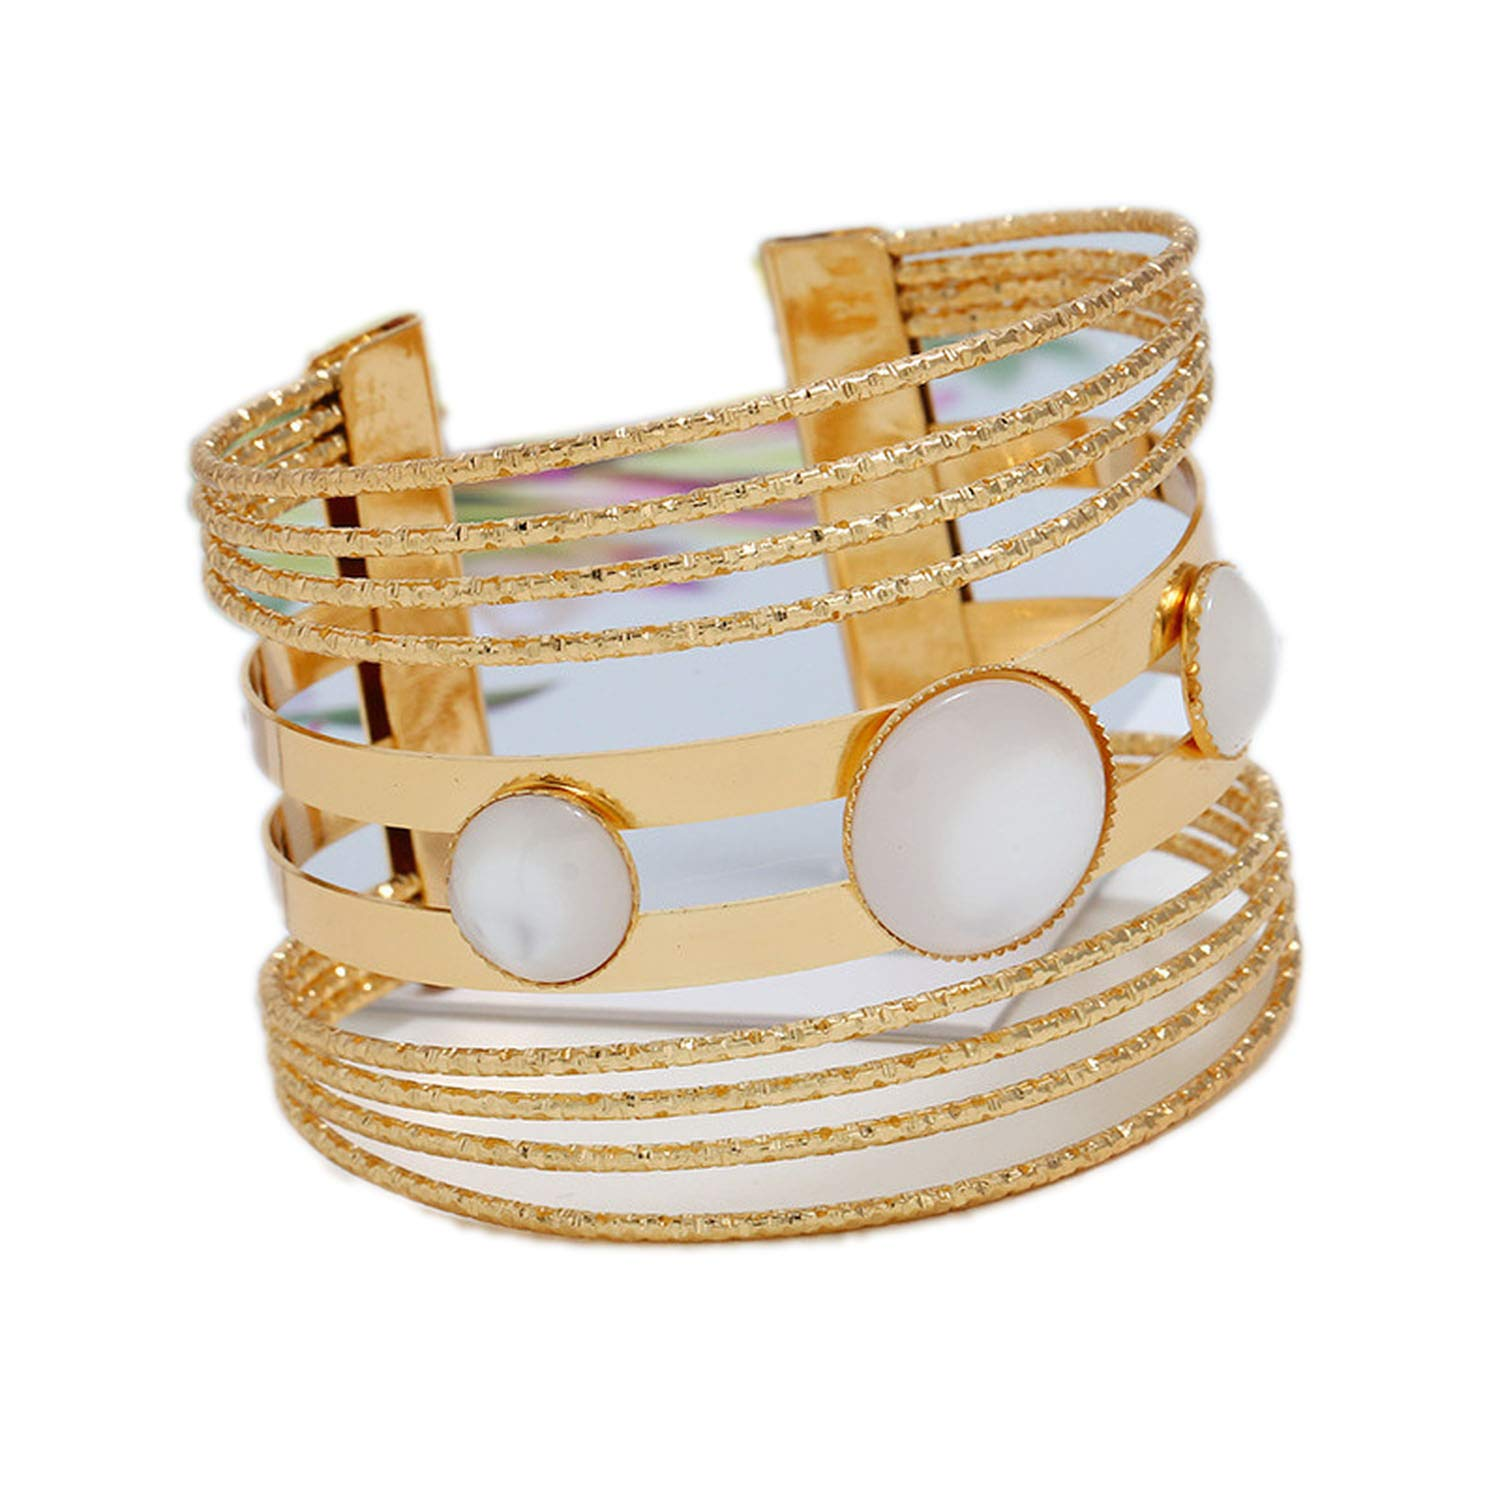 xiaoxiaoland Metal Bangles Women Resin Mosaic Crystal Bracelet Smooth Wide Opening Adjustable Bangle